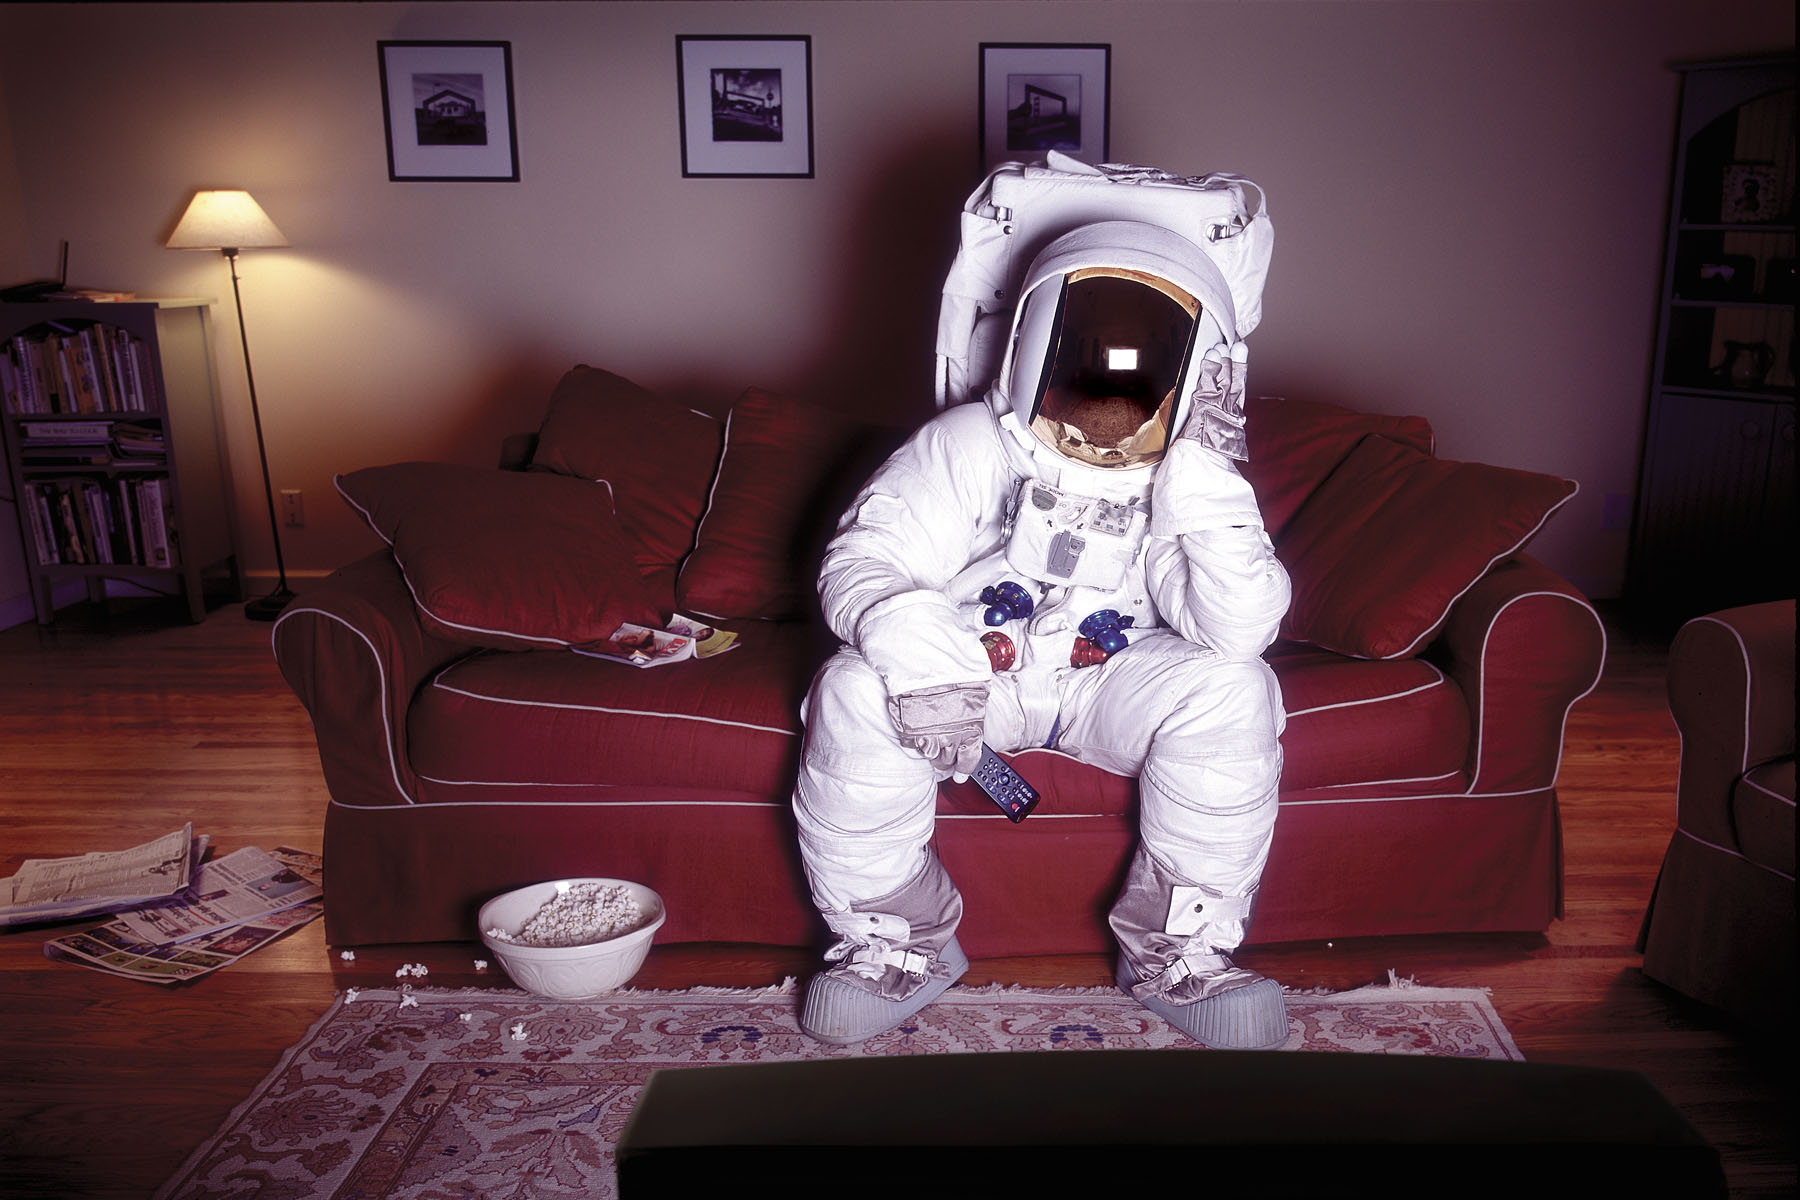 Astronaut_CouchTV_HEweb_SIZED.jpg